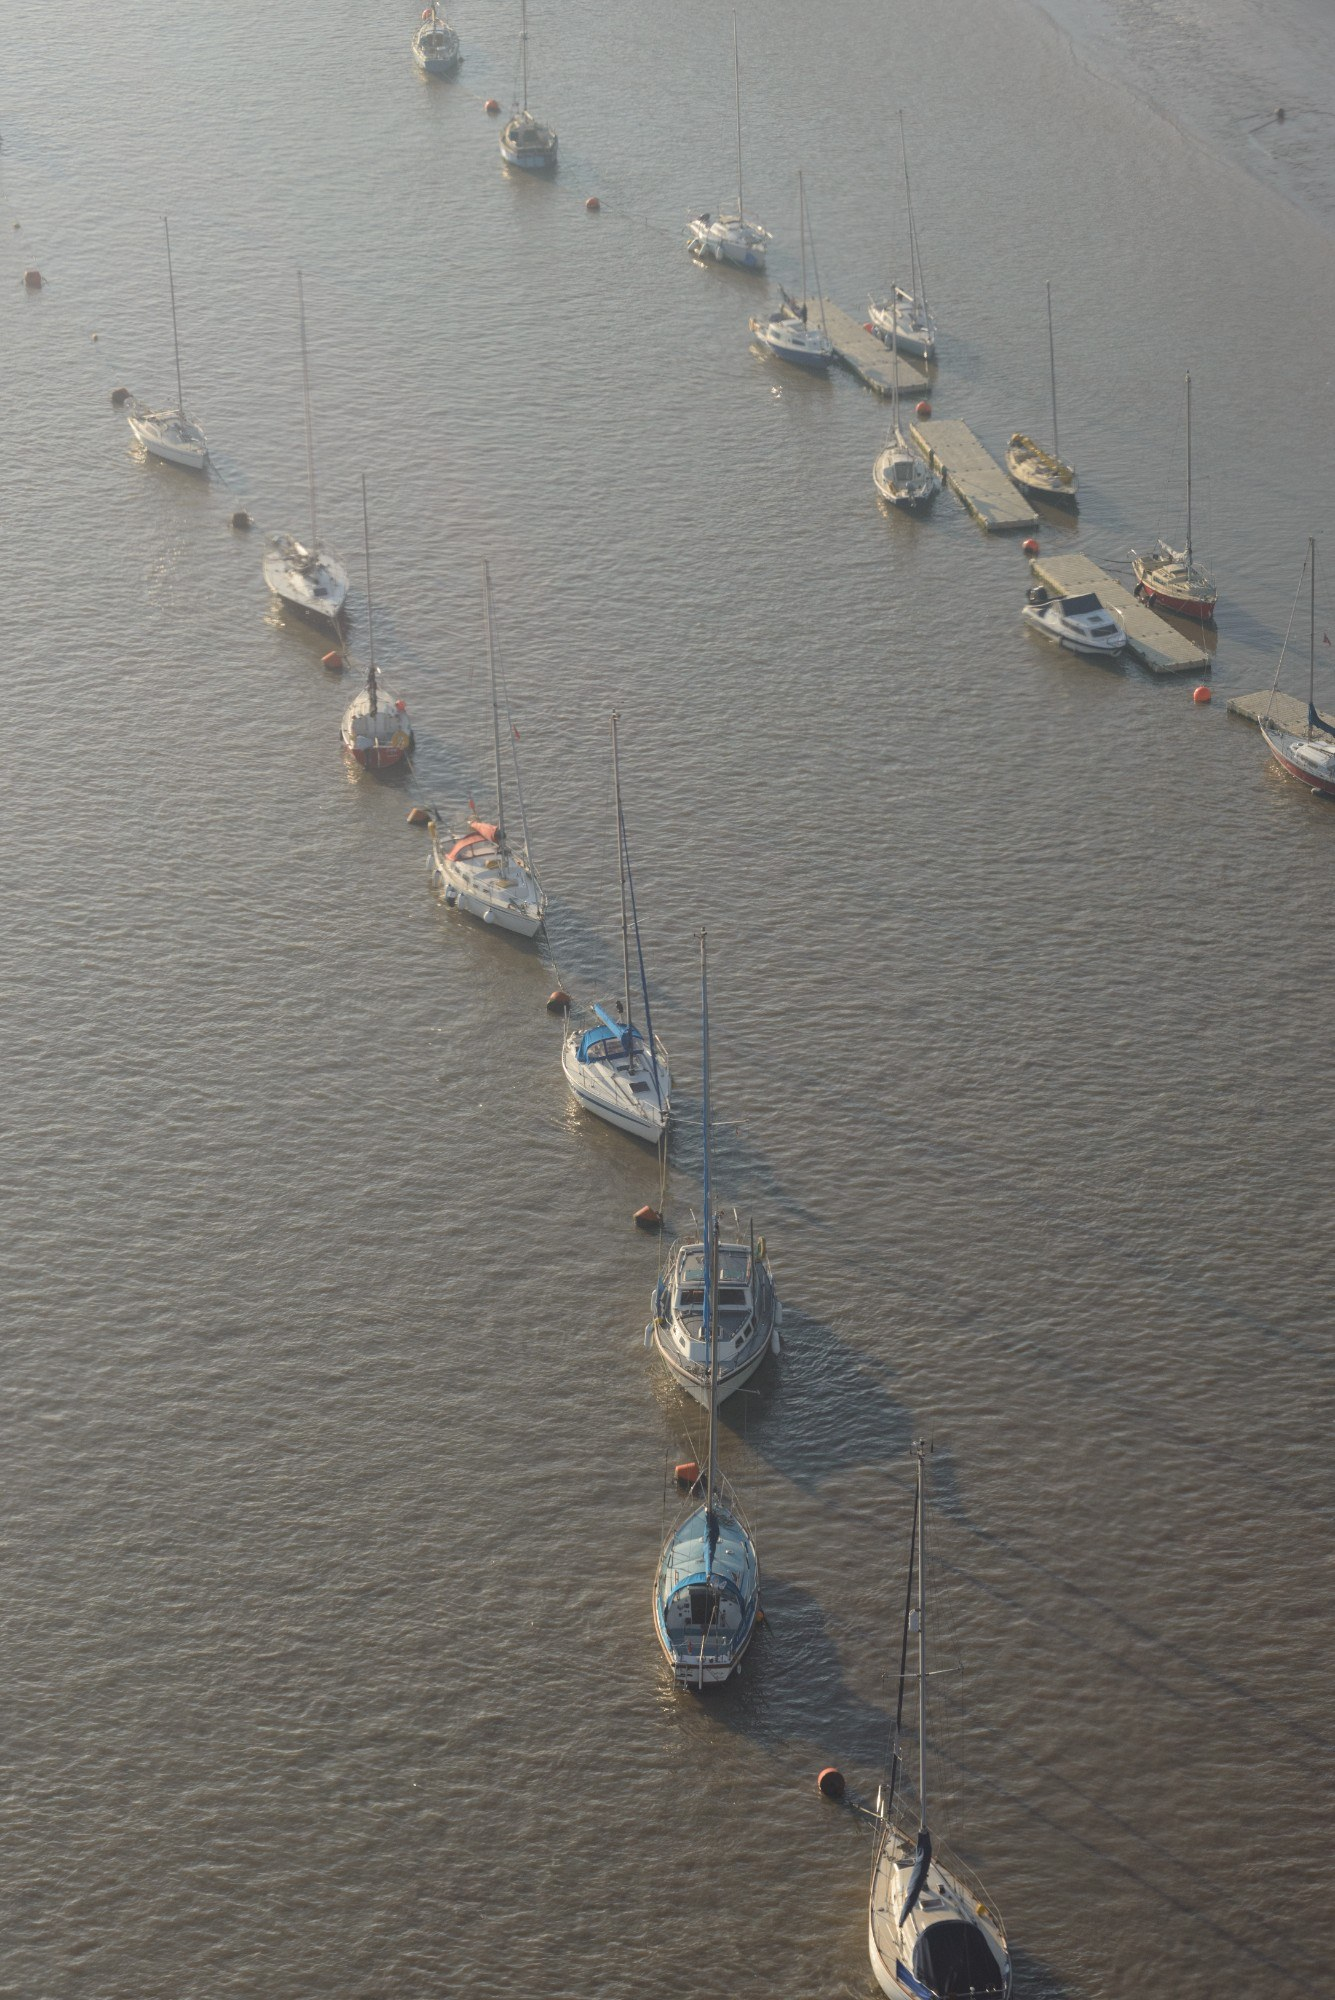 Boats moored in the Thames, seen from above